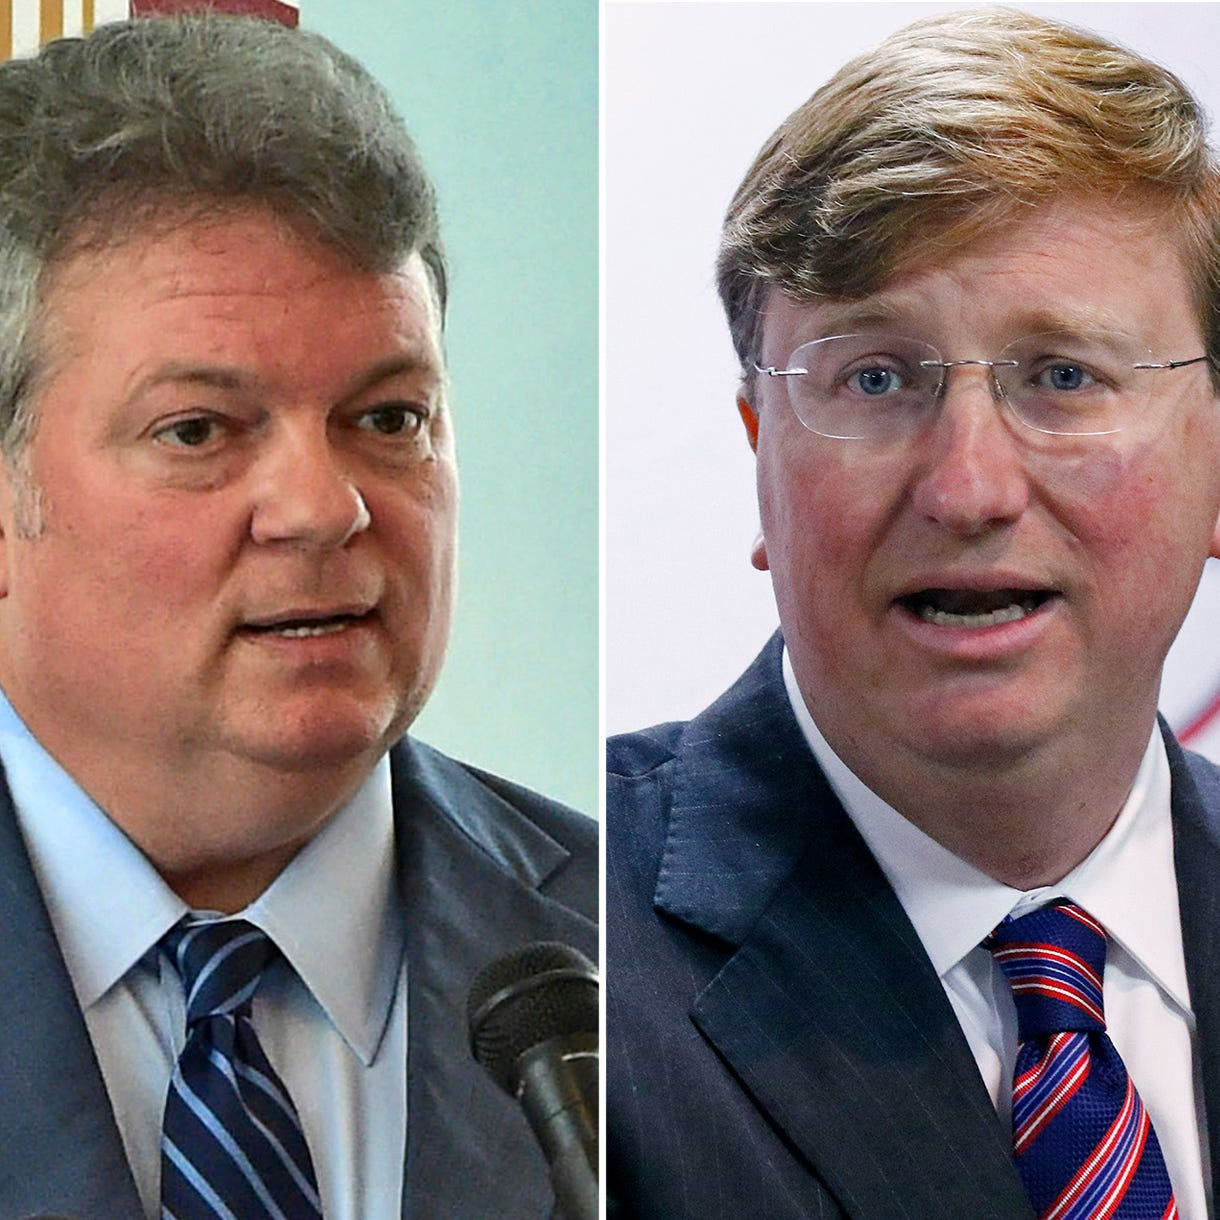 Mississippi Attorney General Jim Hood (left) and Mississippi Lt. Governor Tate Reeves